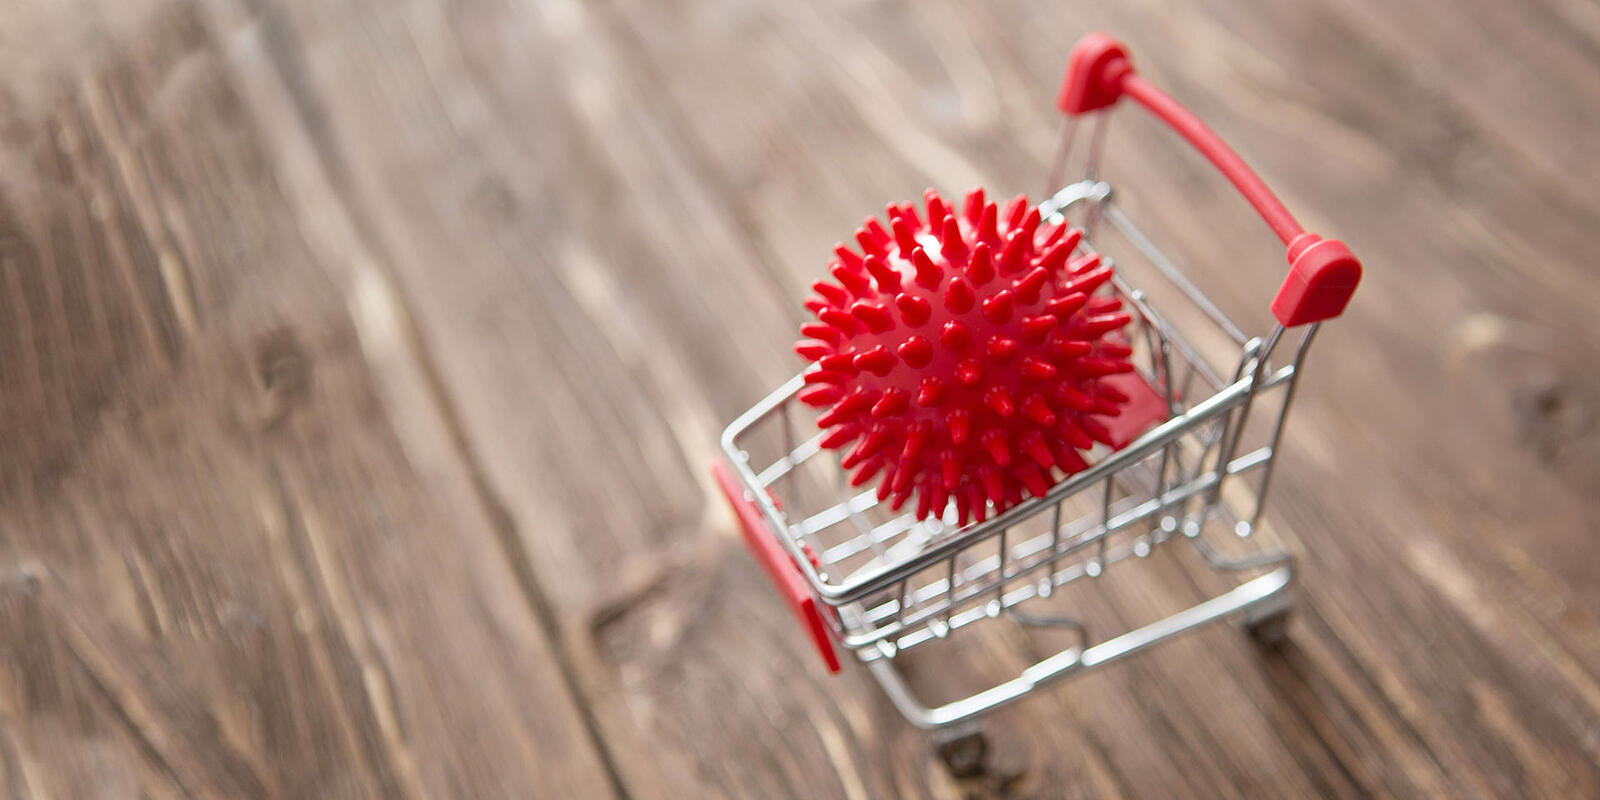 7 ways the Covid-19 pandemic will transform physical retail stores long-term